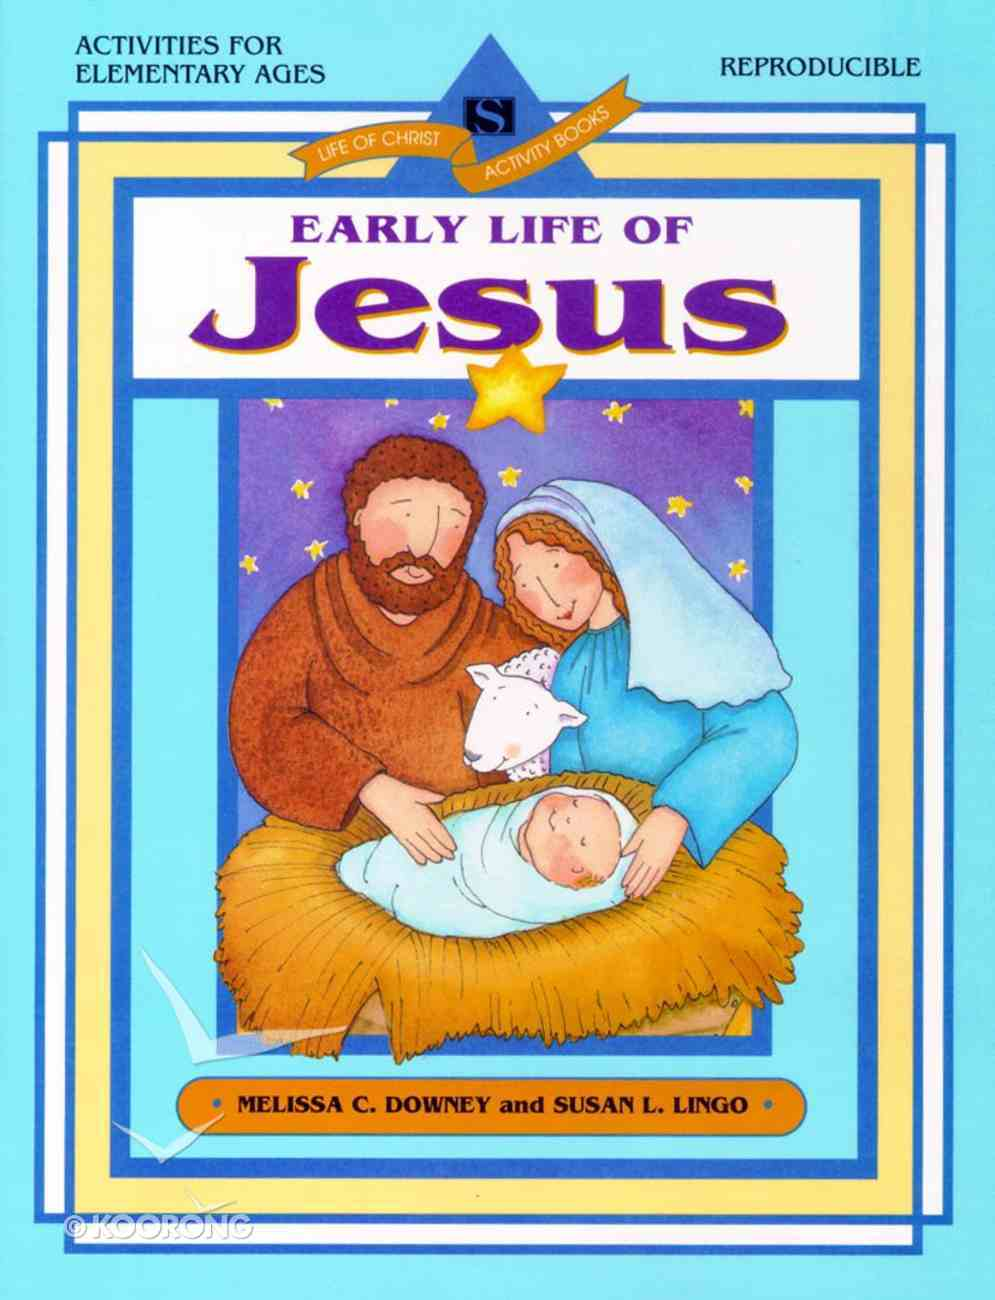 Life of Christ Activity Book: Early Life of Jesus (Reproducible) Paperback